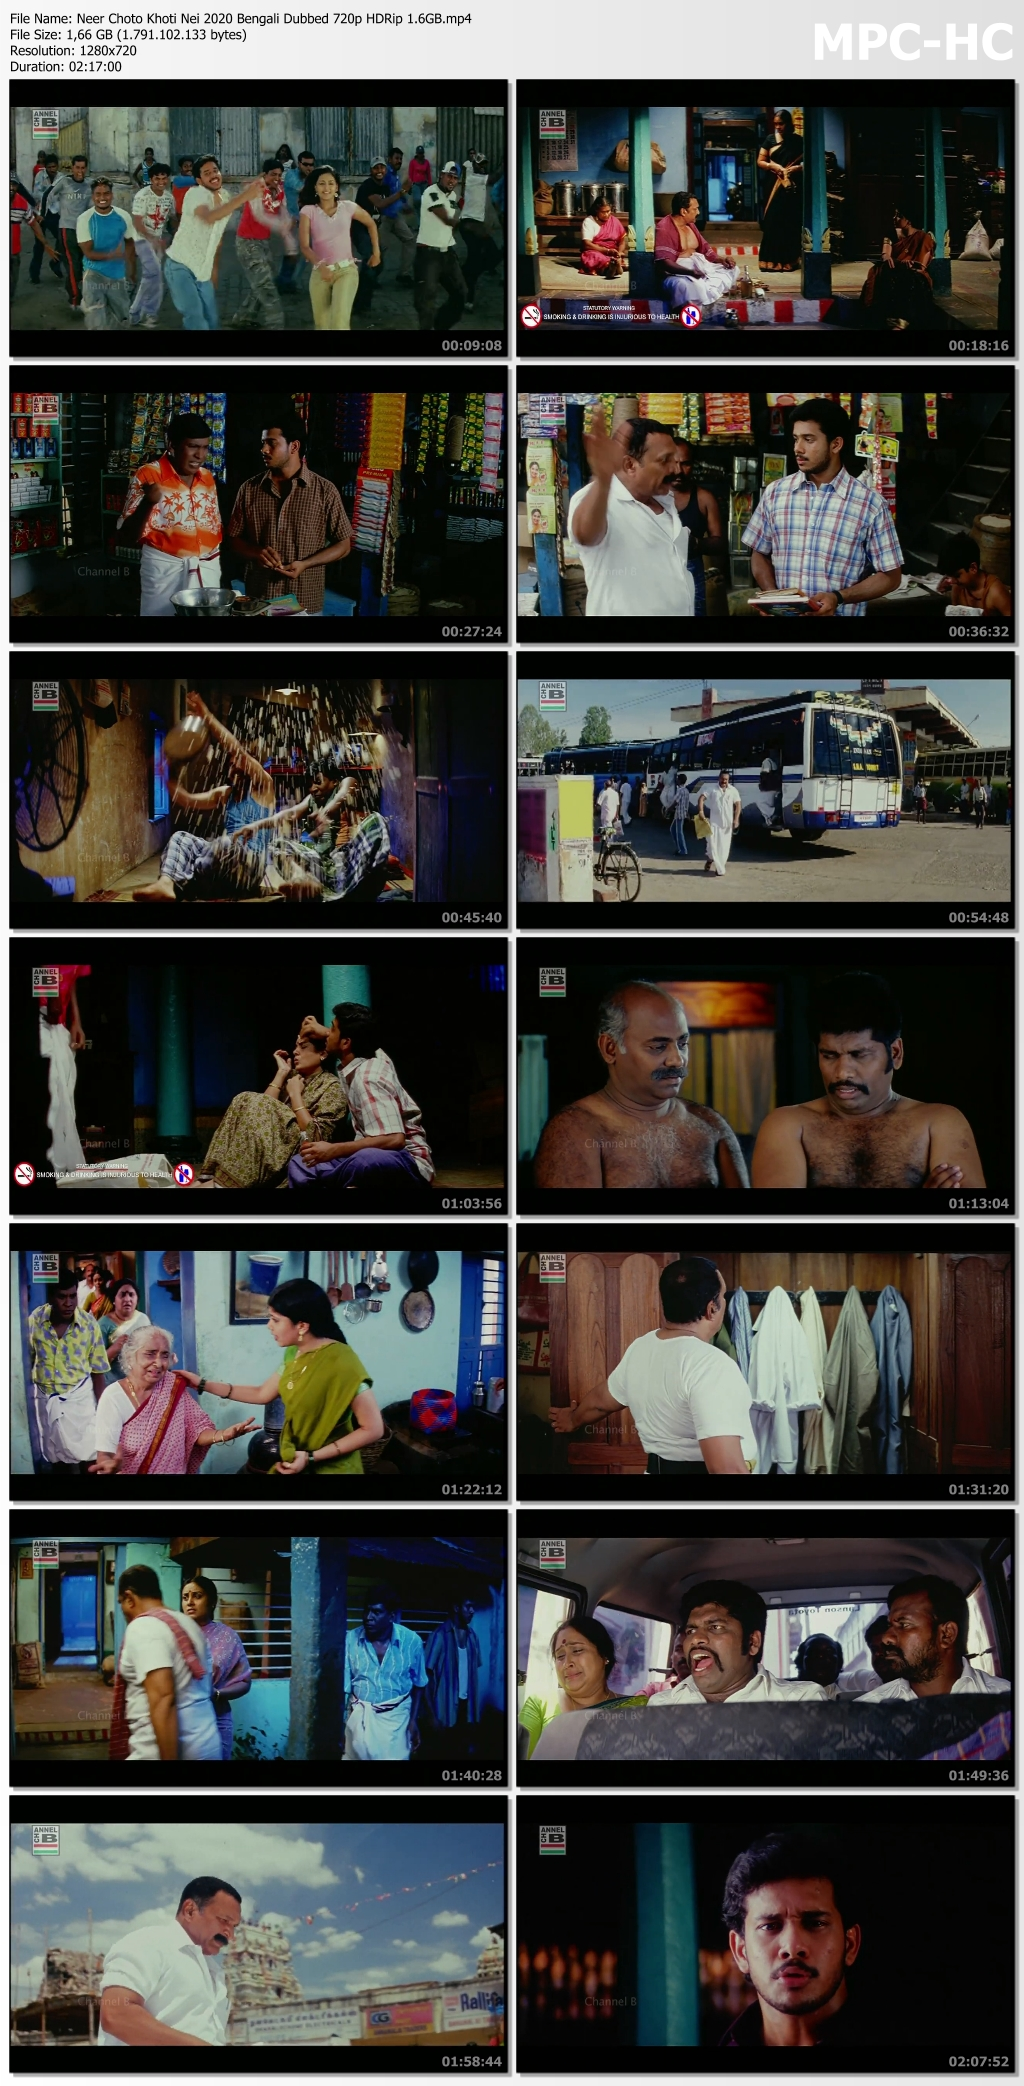 Neer-Choto-Khoti-Nei-2020-Bengali-Dubbed-720p-HDRip-1-6-GB-mp4-thumbs